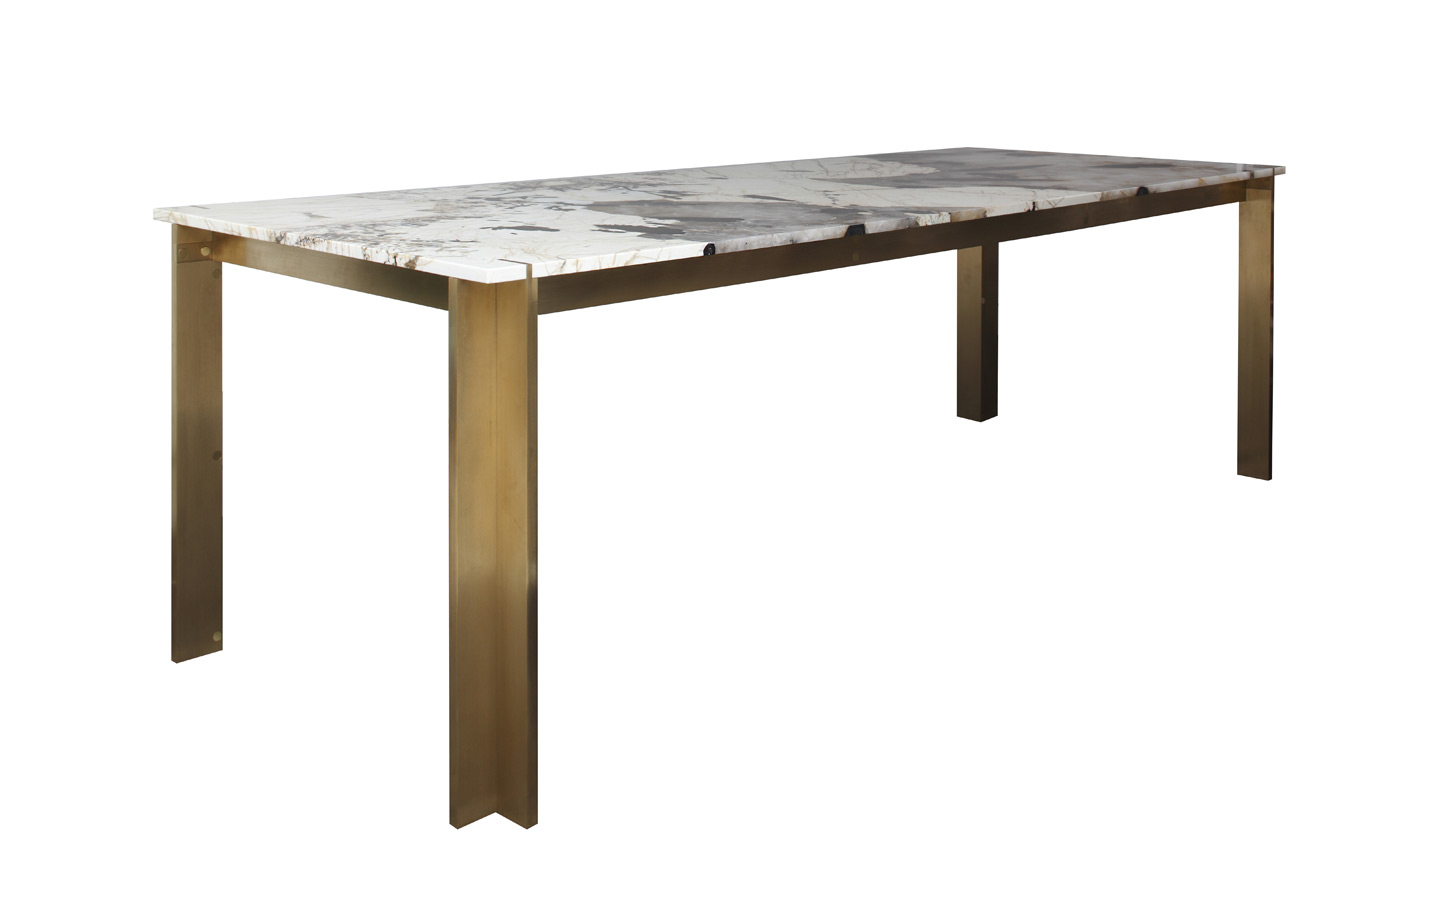 A Modular, Component dining table with milled brass frame and stone top